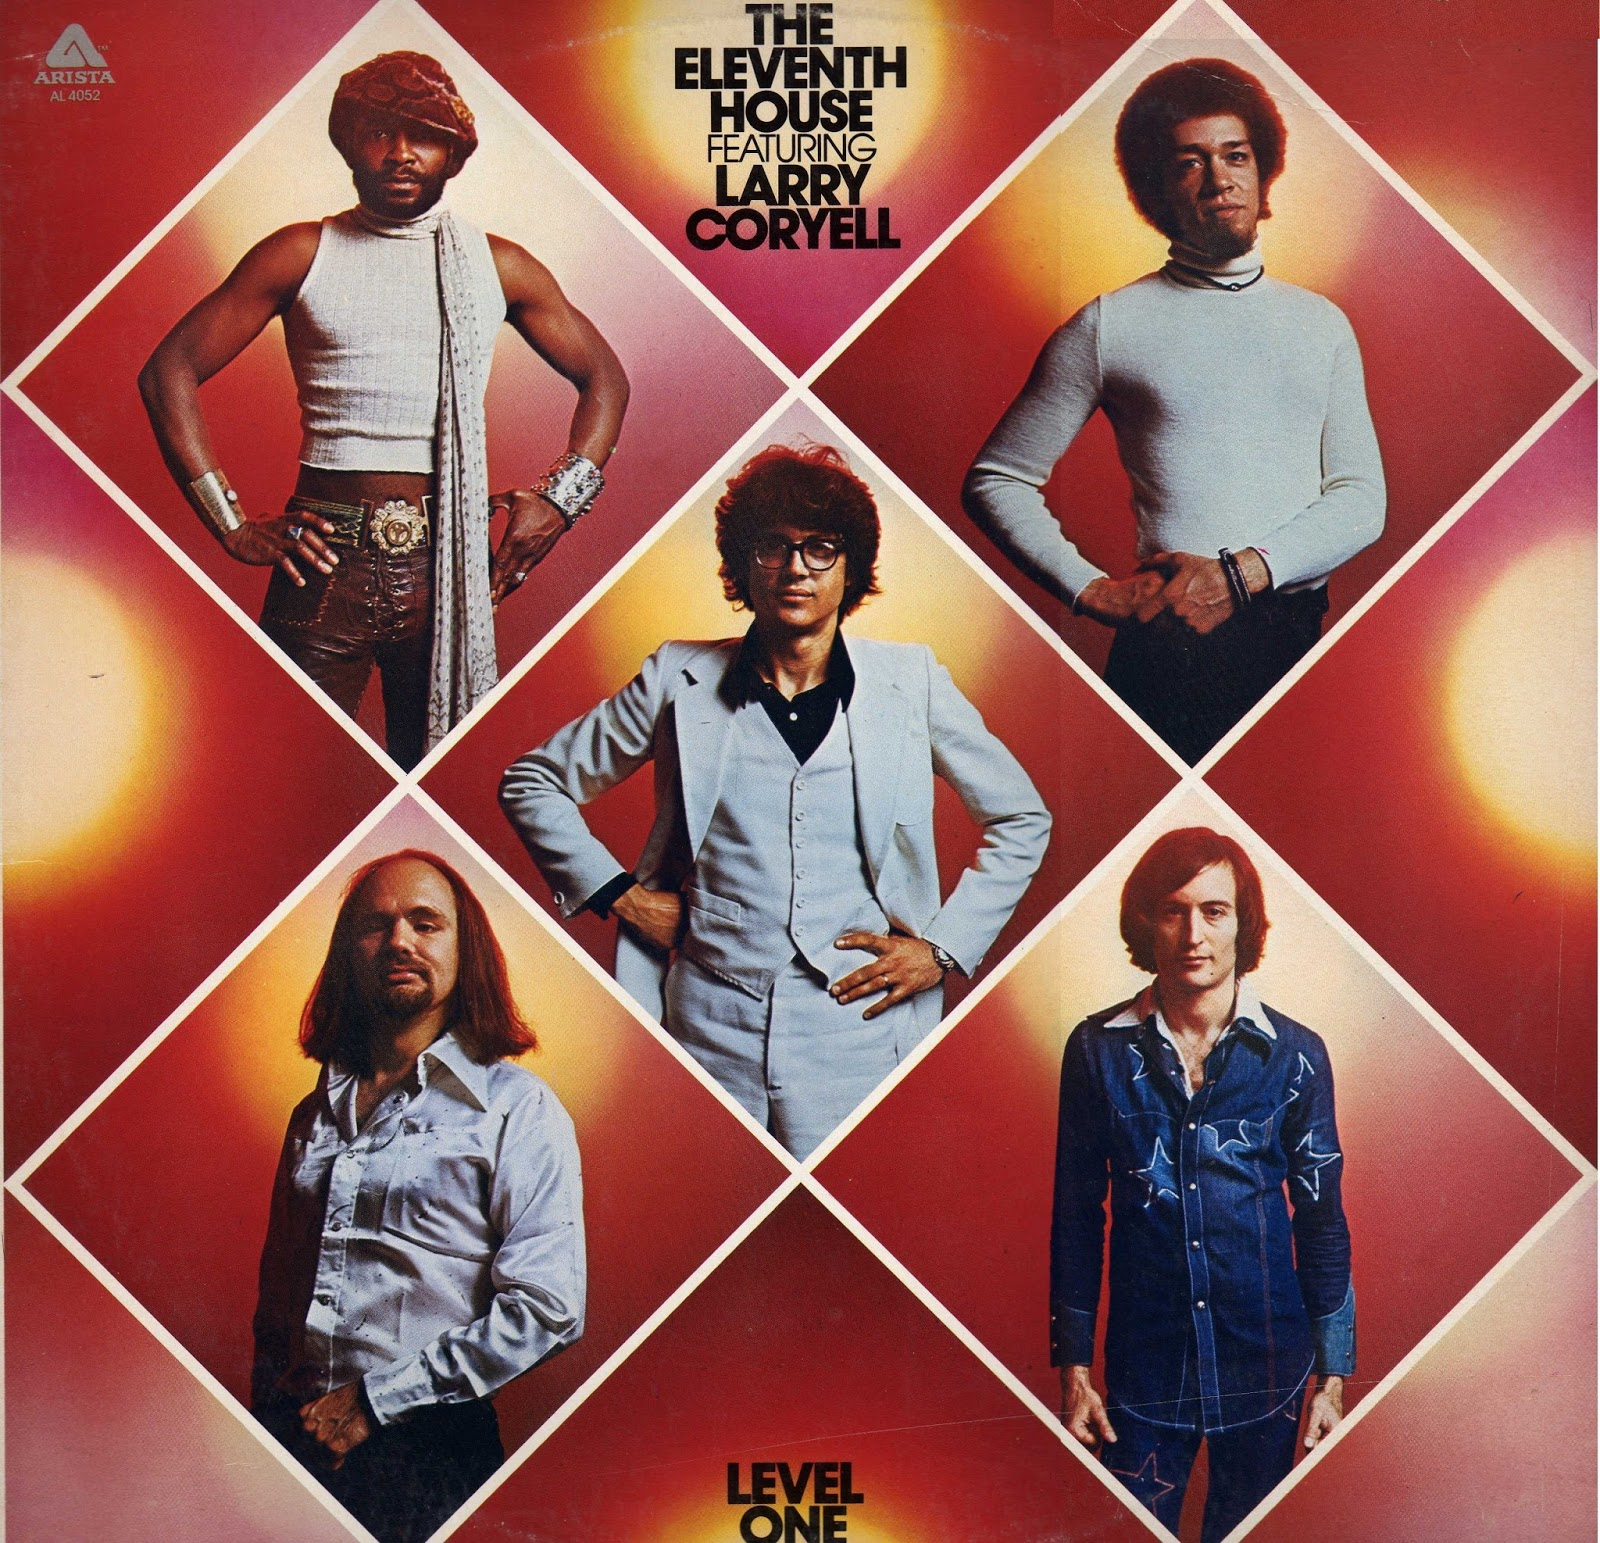 jazz rock fusion guitar the eleventh house feat larry coryell 1975 2012 level one. Black Bedroom Furniture Sets. Home Design Ideas